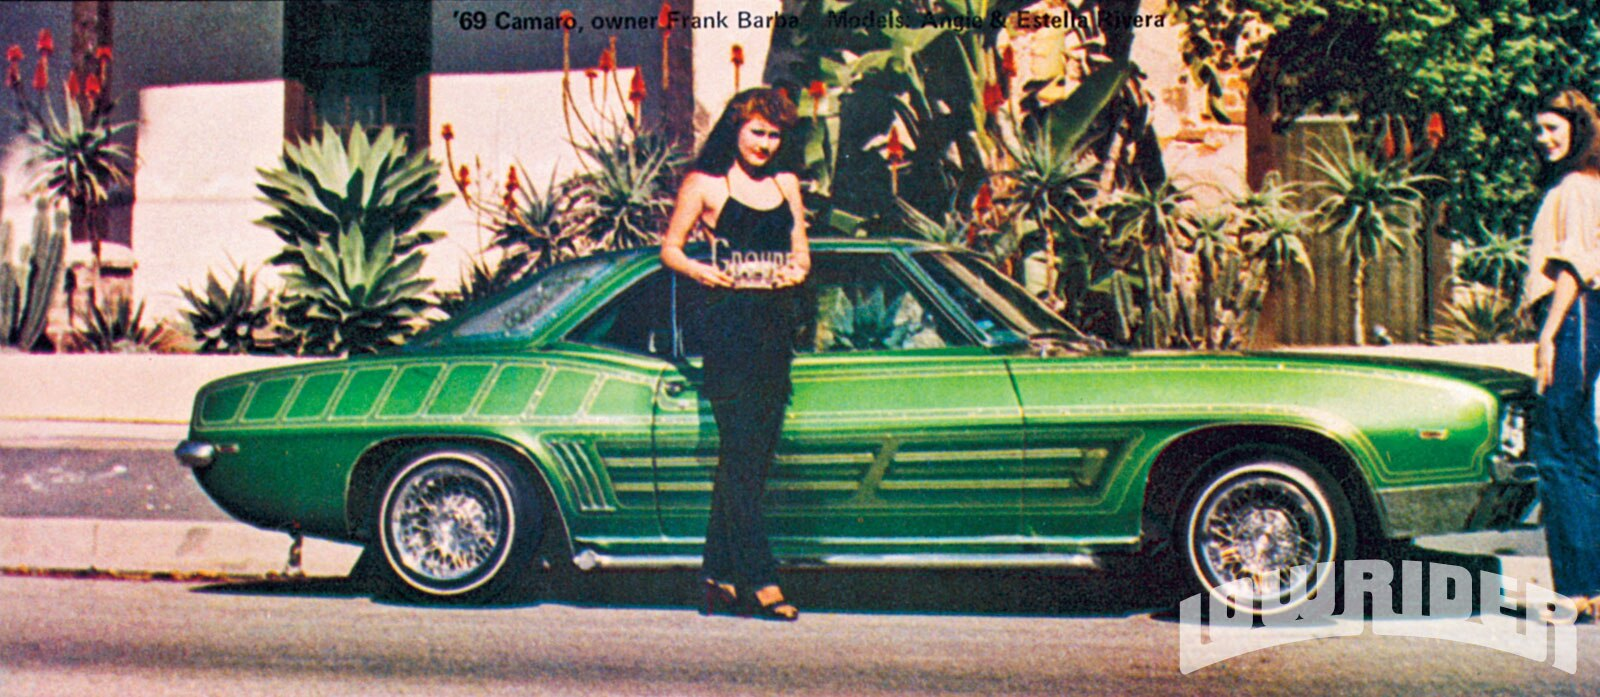 <center>Dazed and Confused Camaro</center>